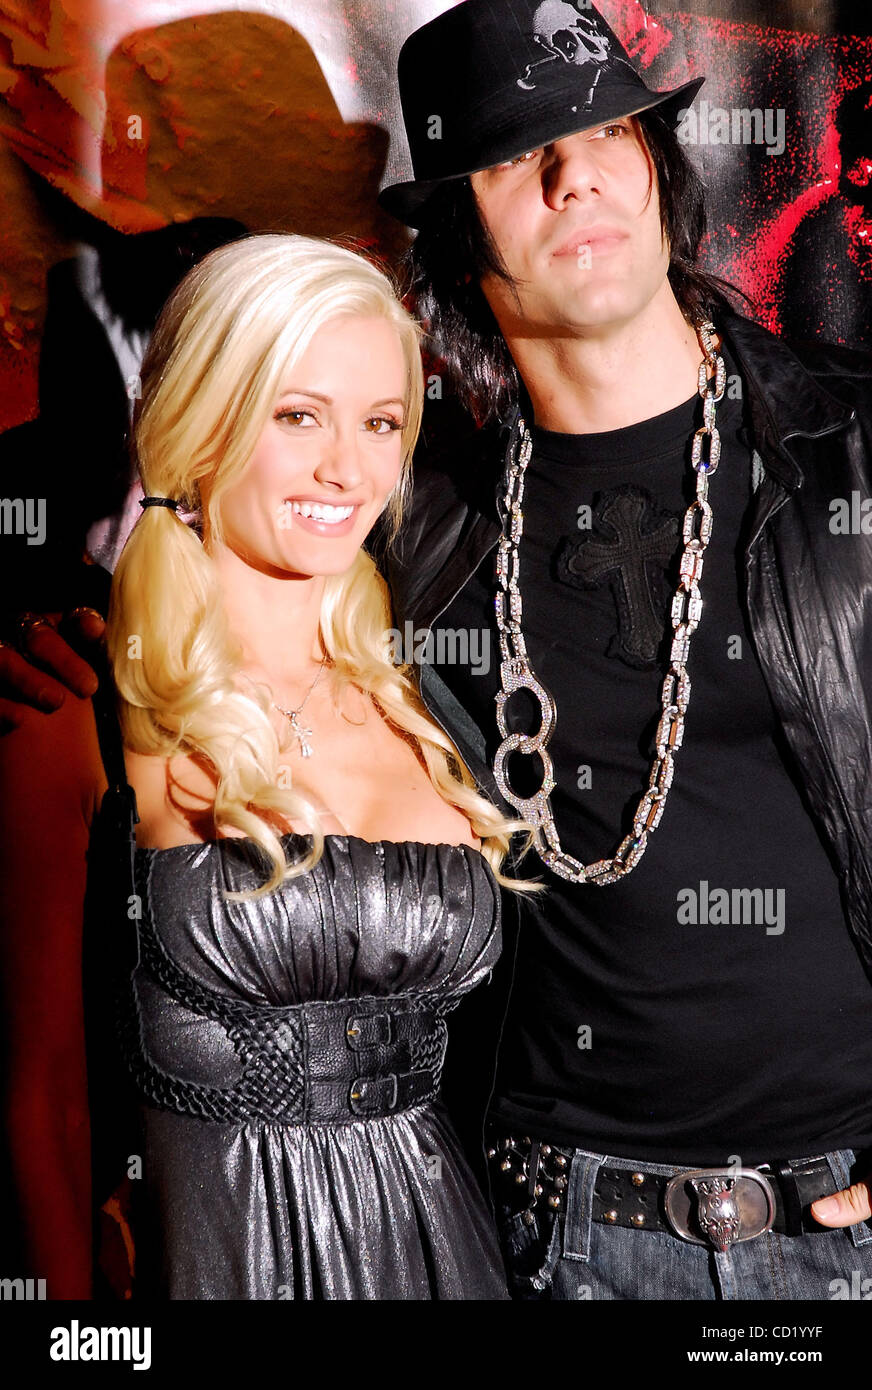 criss angel and holly madison stock photos & criss angel and holly